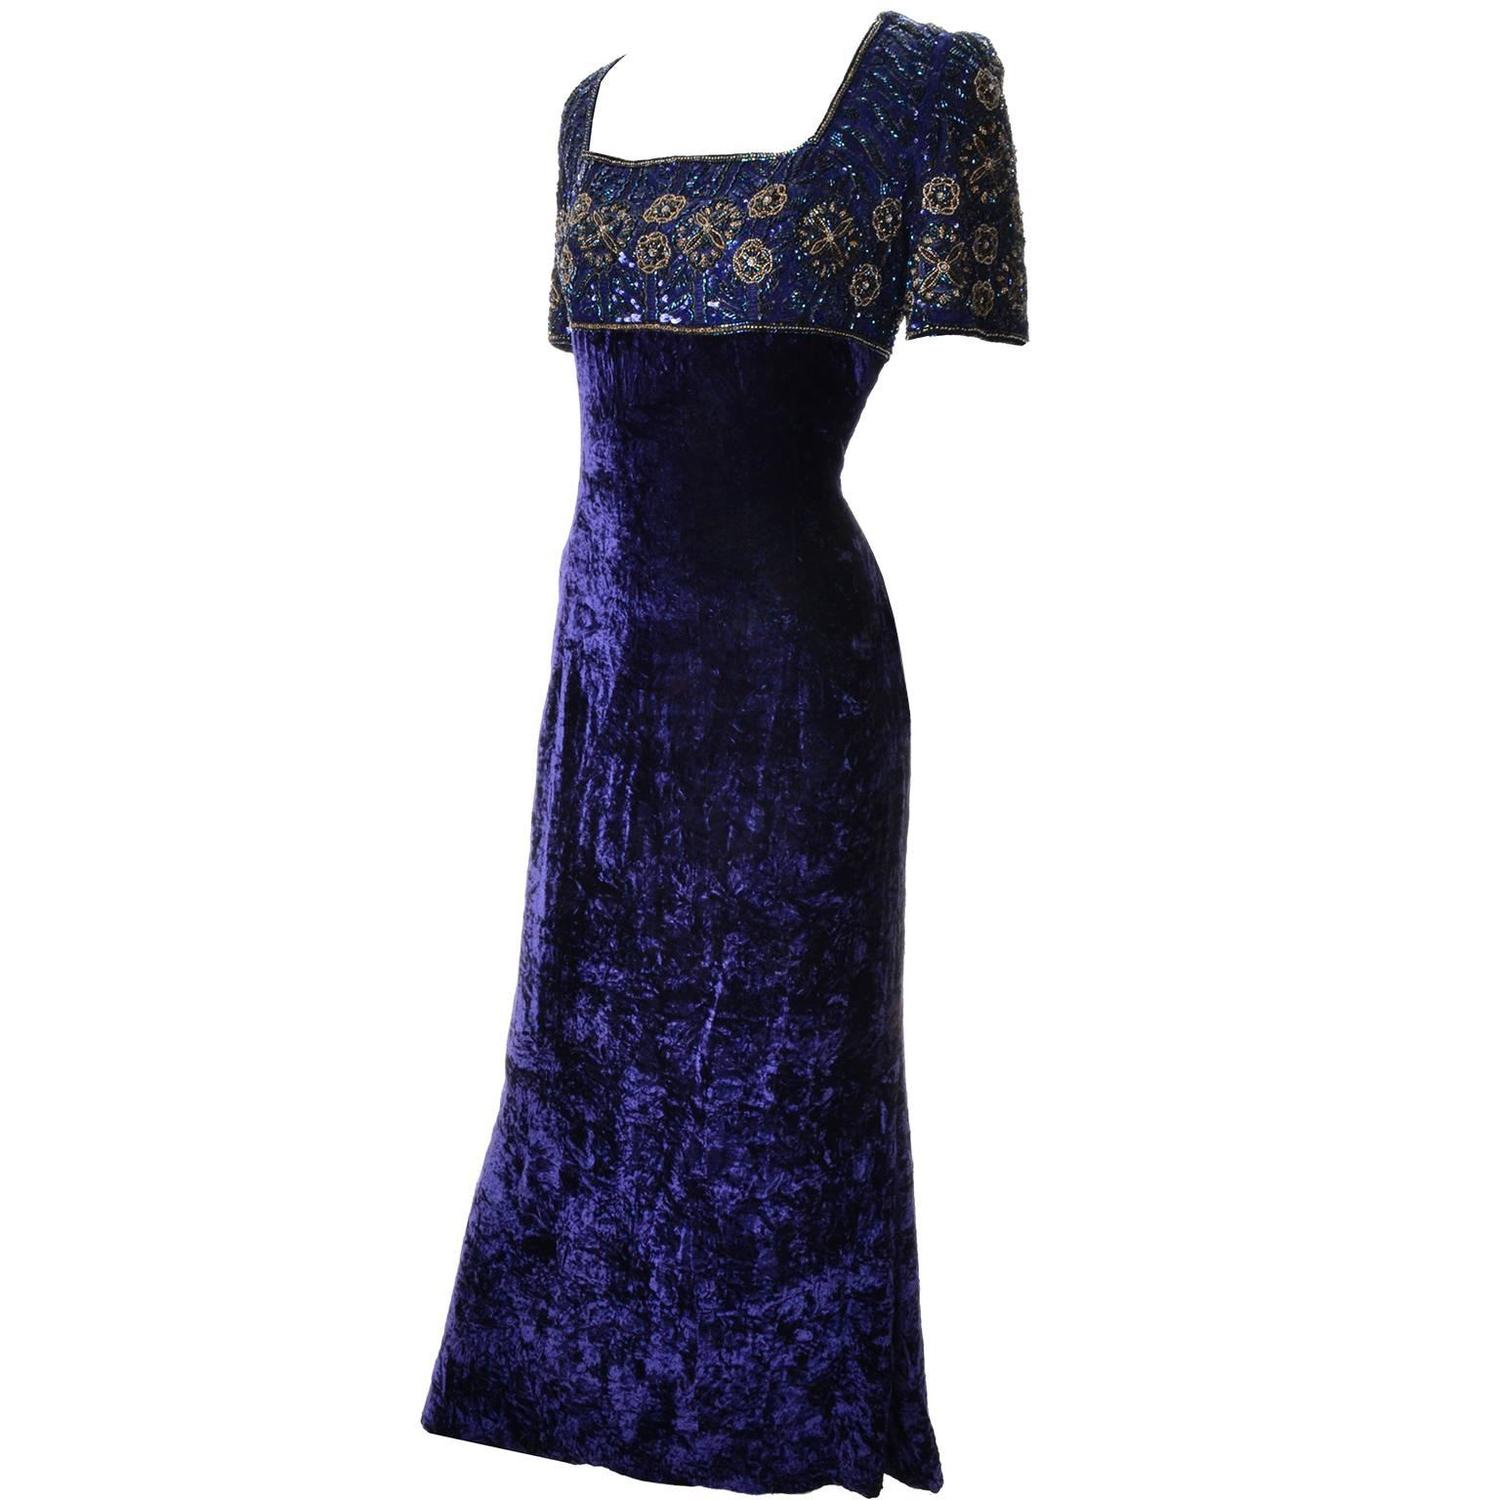 Vintage Escada Evening Dresses and Gowns - 15 For Sale at 1stdibs